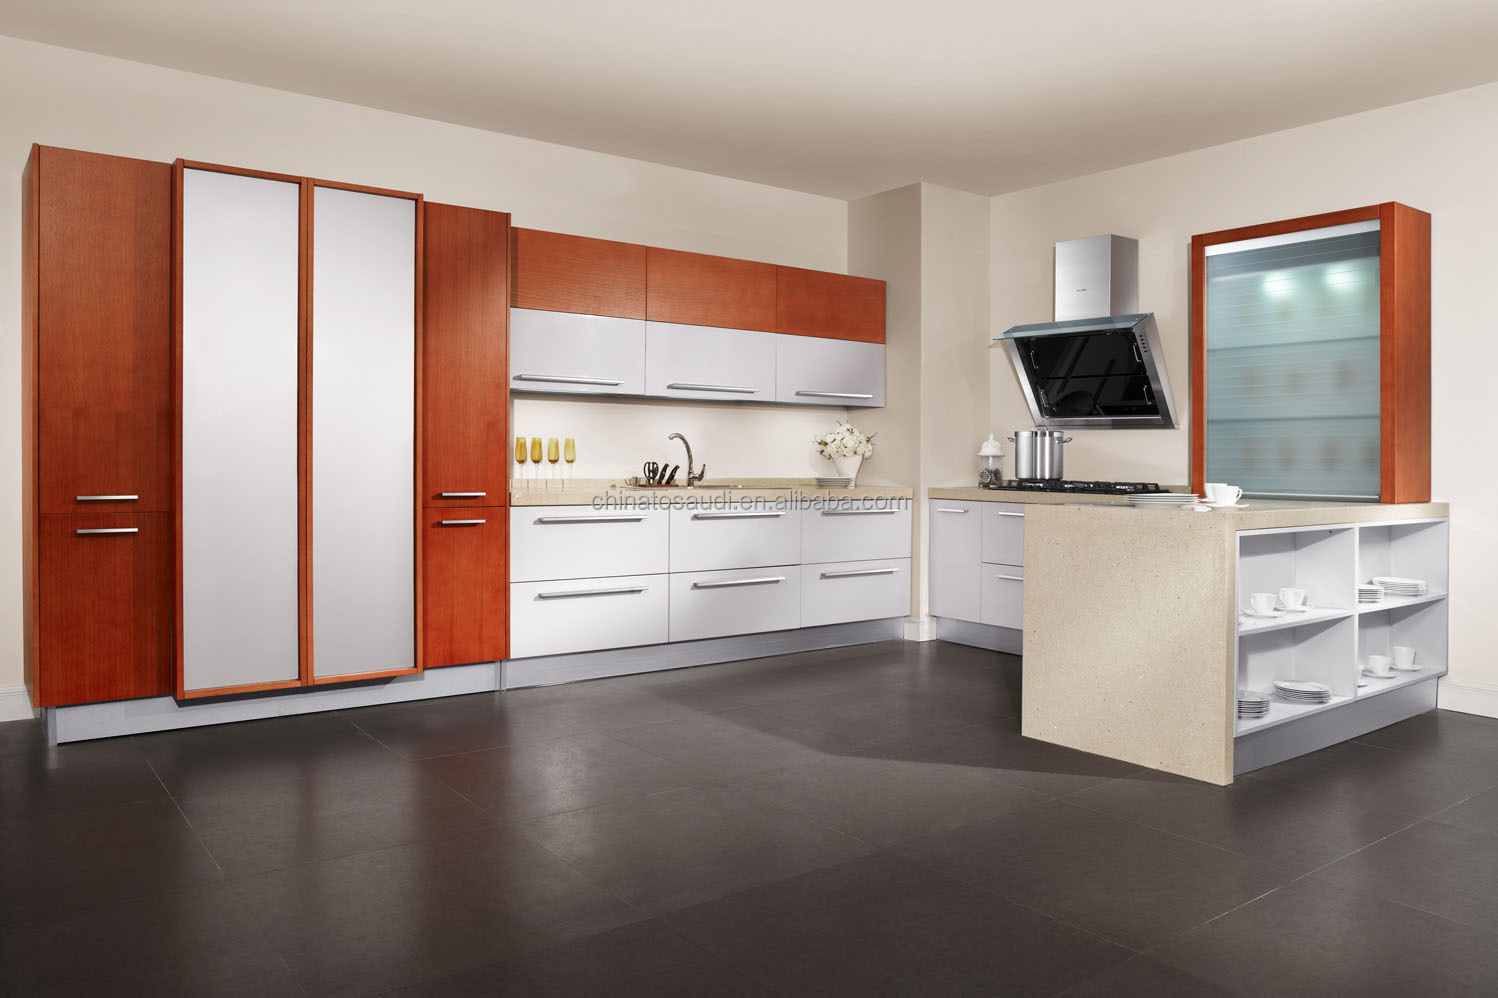 Modern Modular Kitchens Designs Price Kichen Cabinets With